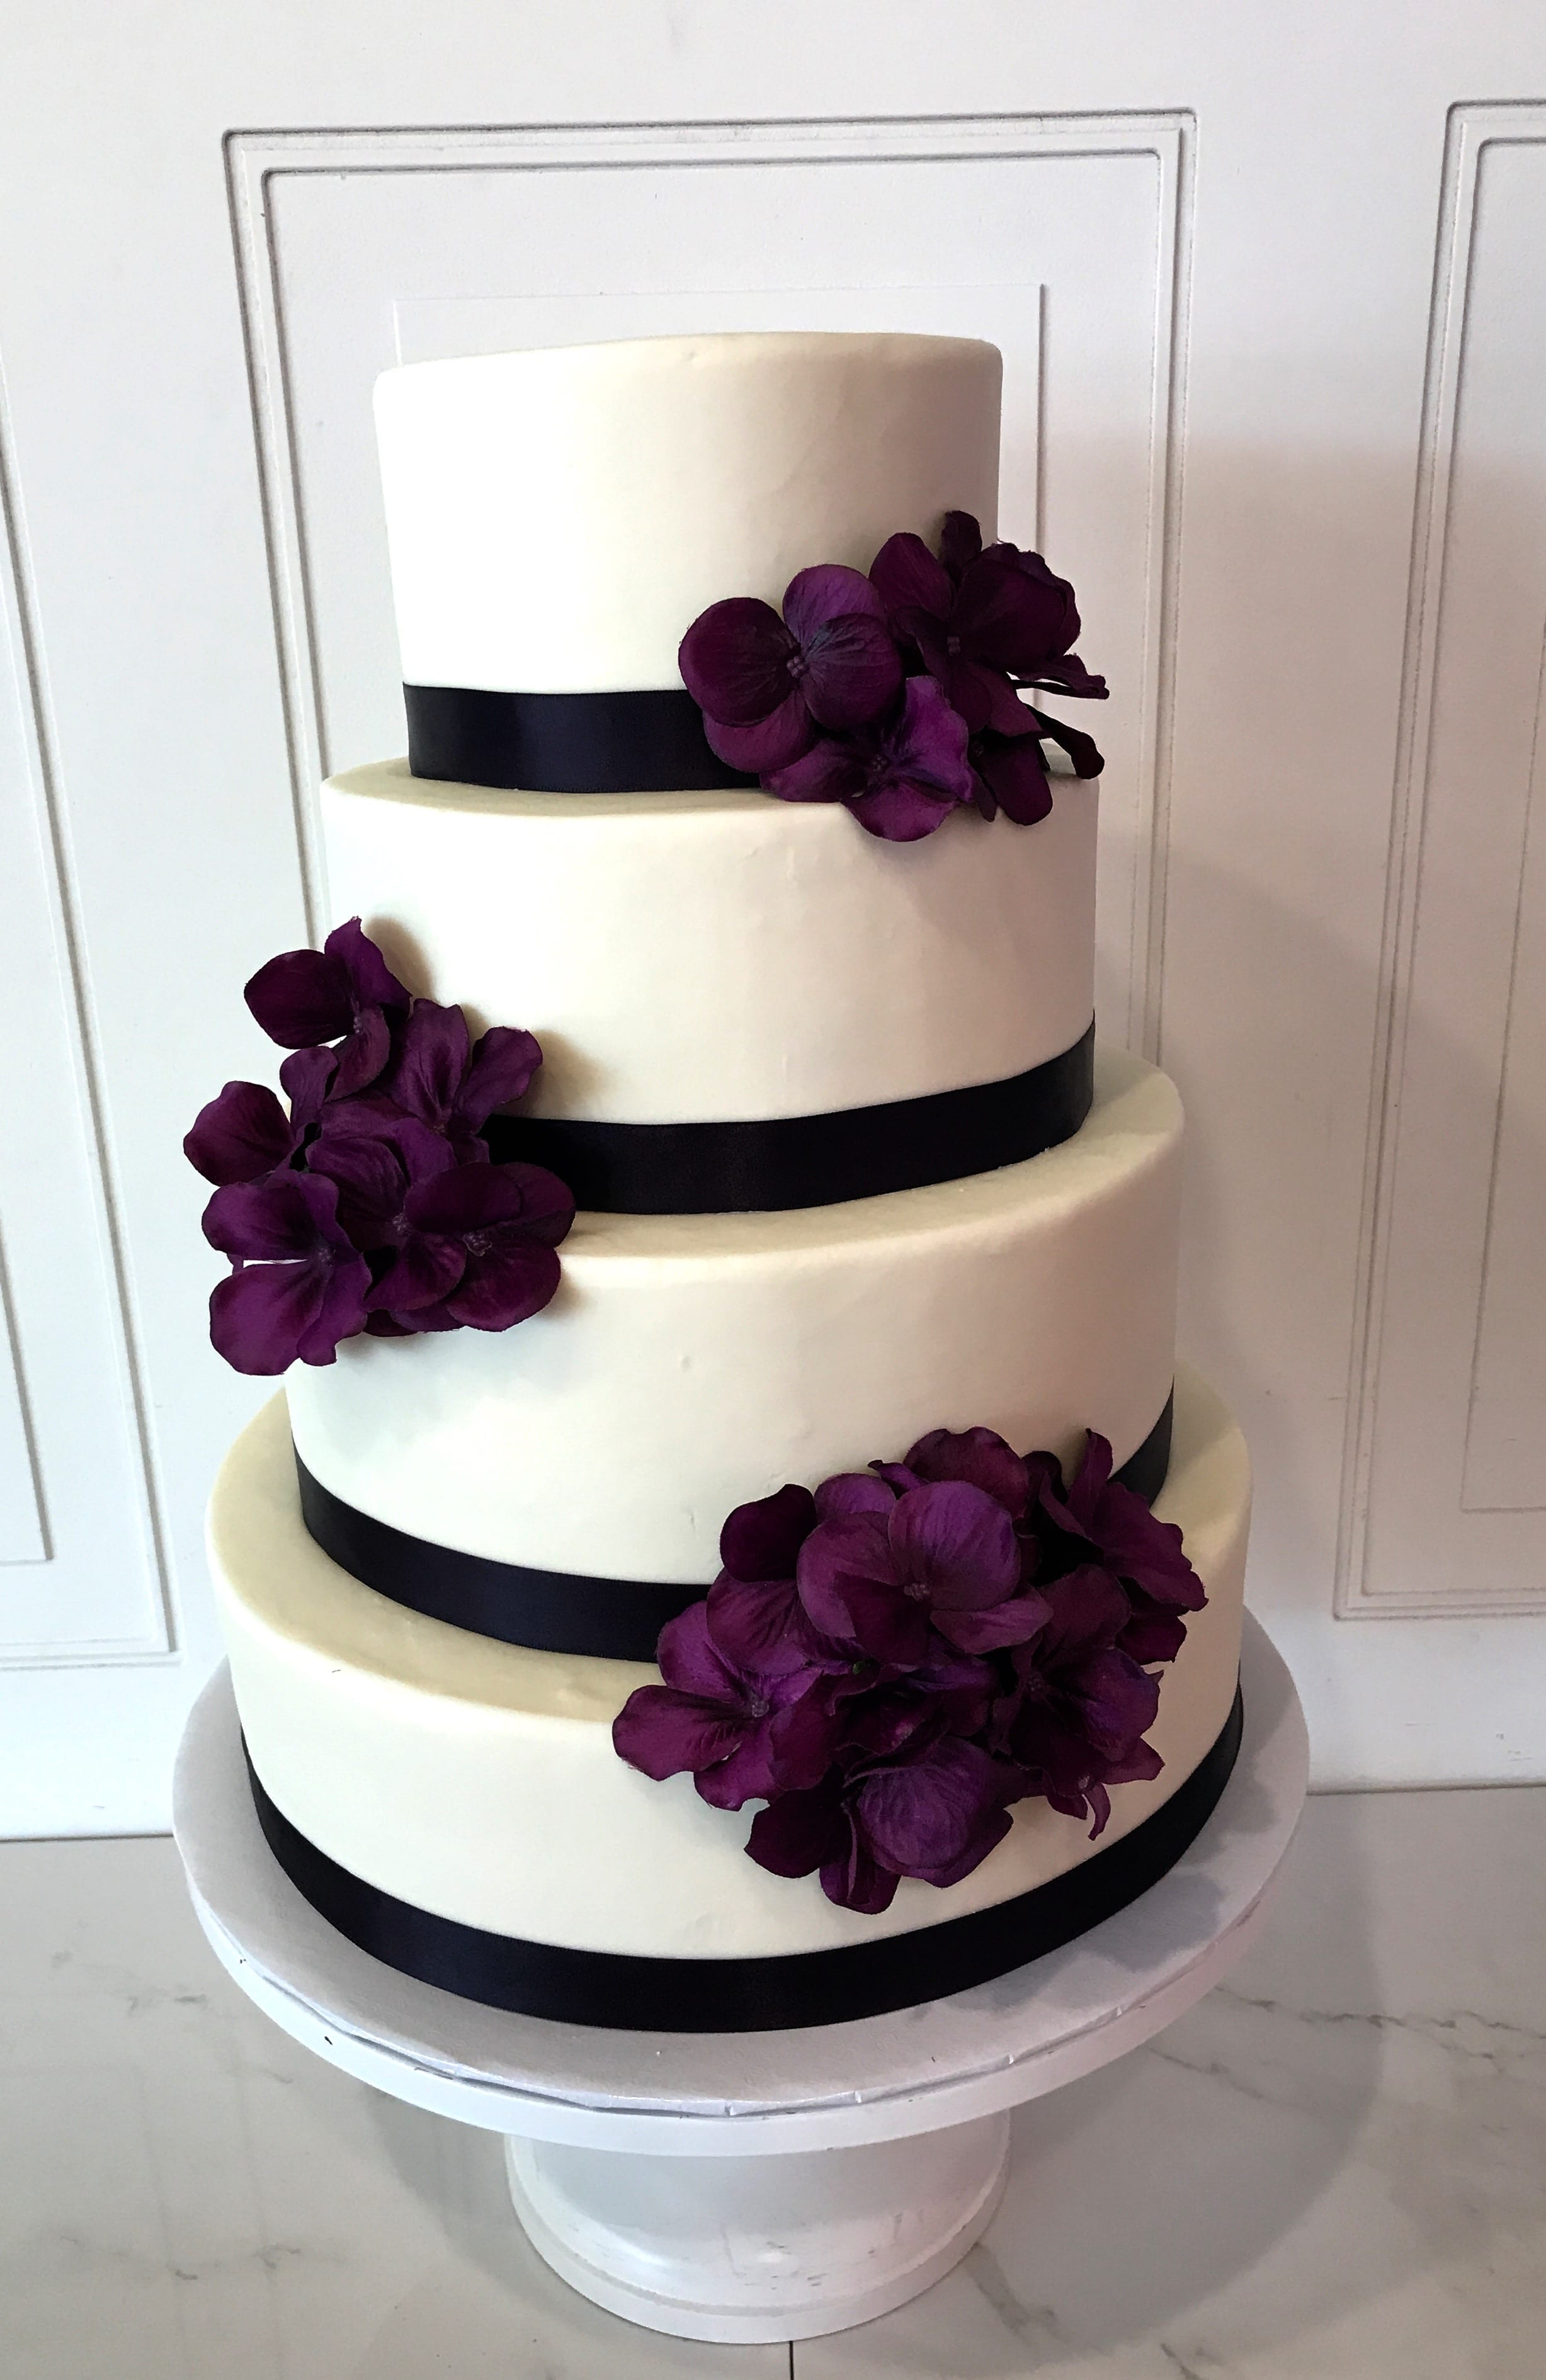 4 Tier White Wedding Cake with Black Bands and Purple Flowers | 3 Sweet Girls Cakery